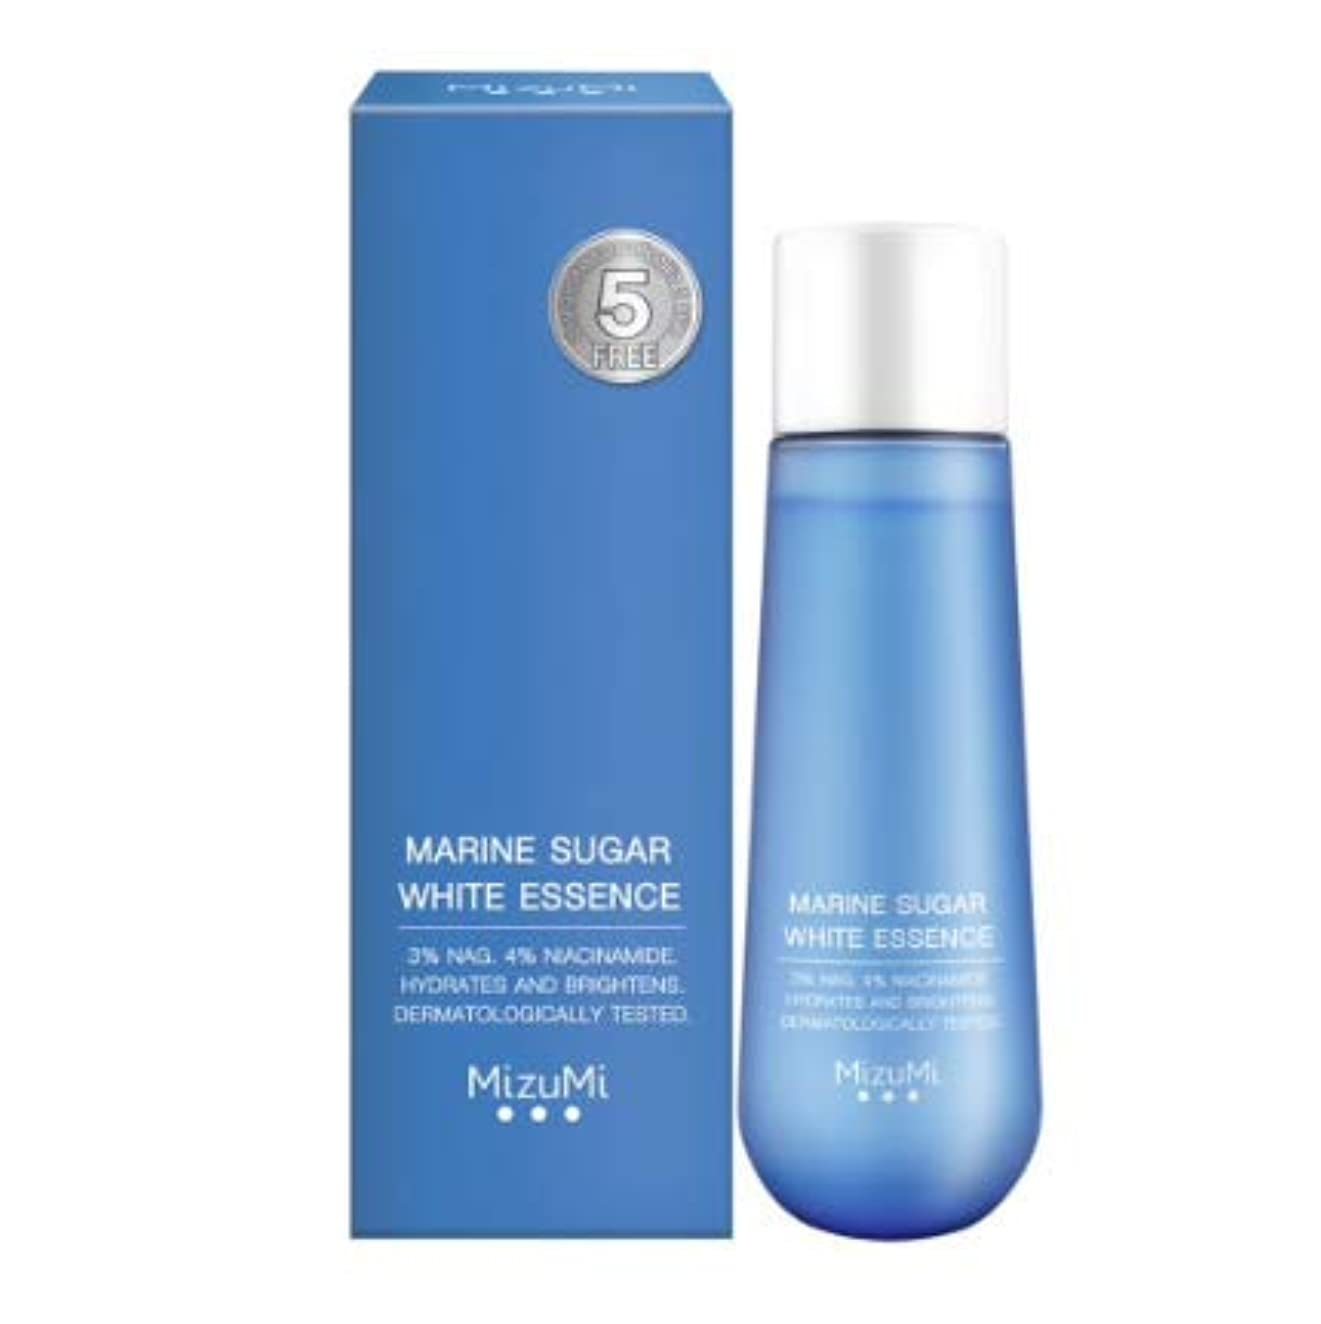 MizuMi Marine Sugar White Essence 125 ml.